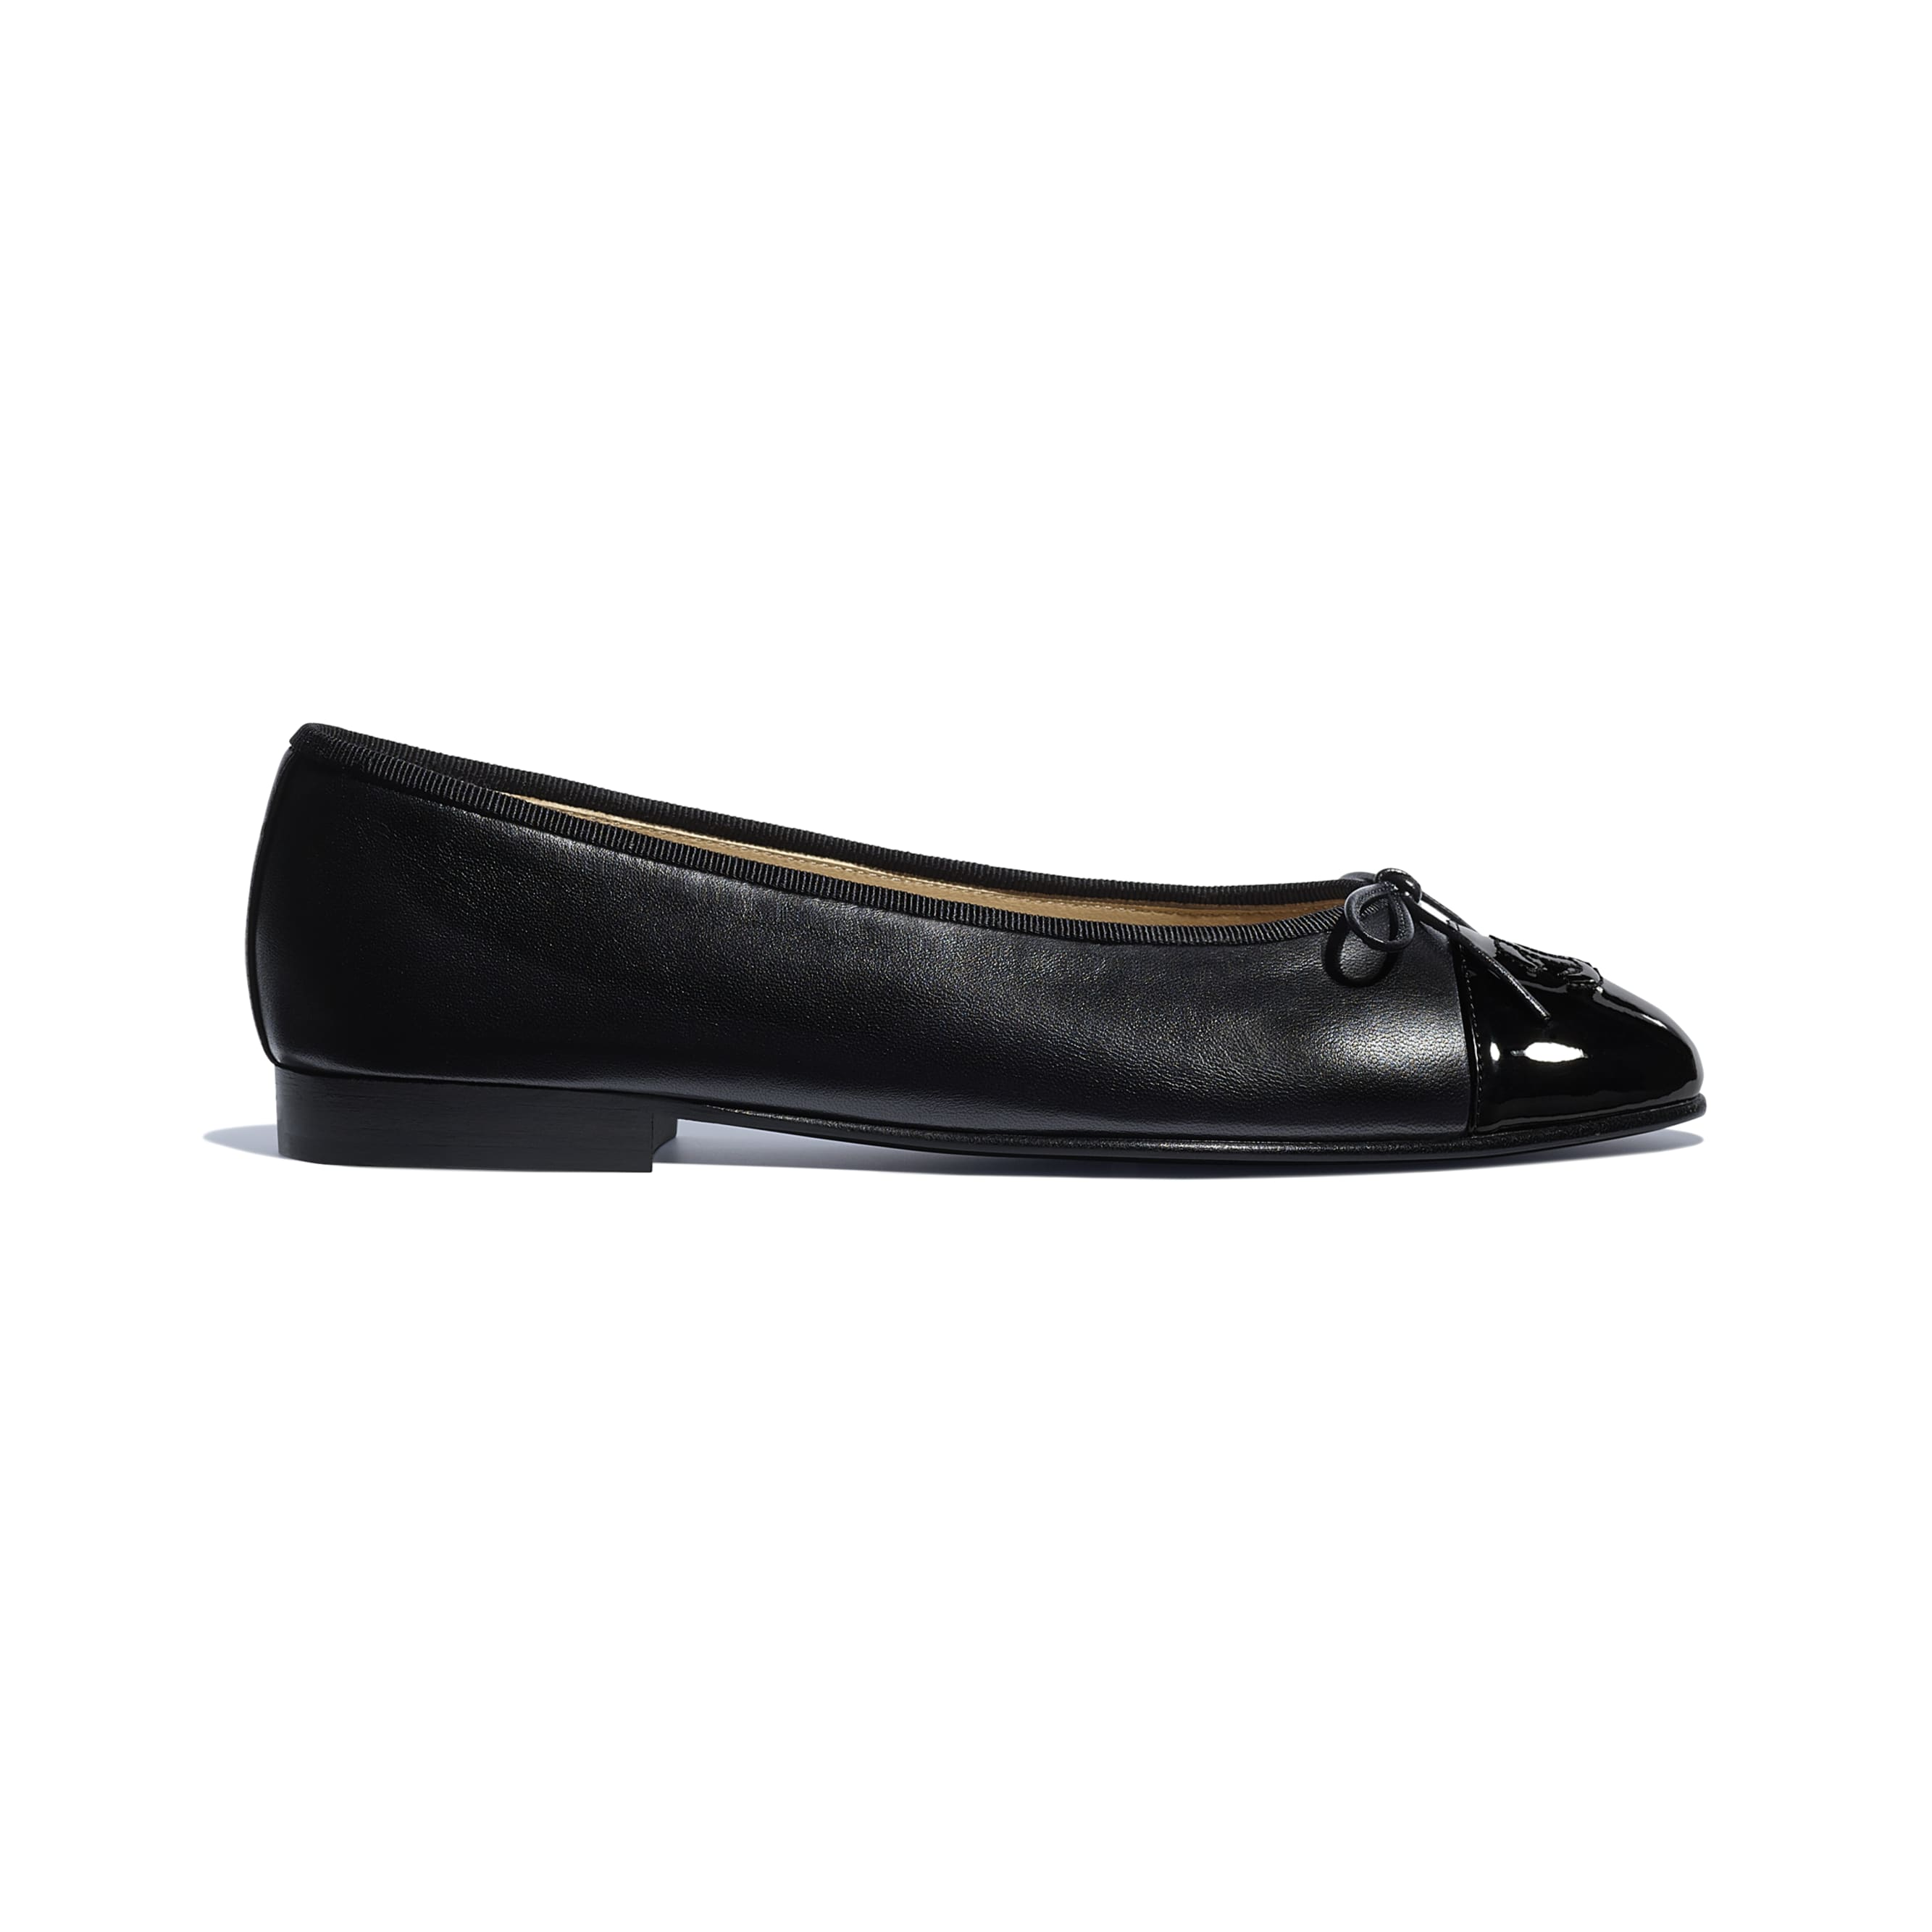 Flats - Black - Lambskin & Patent Calfskin - CHANEL - Default view - see standard sized version